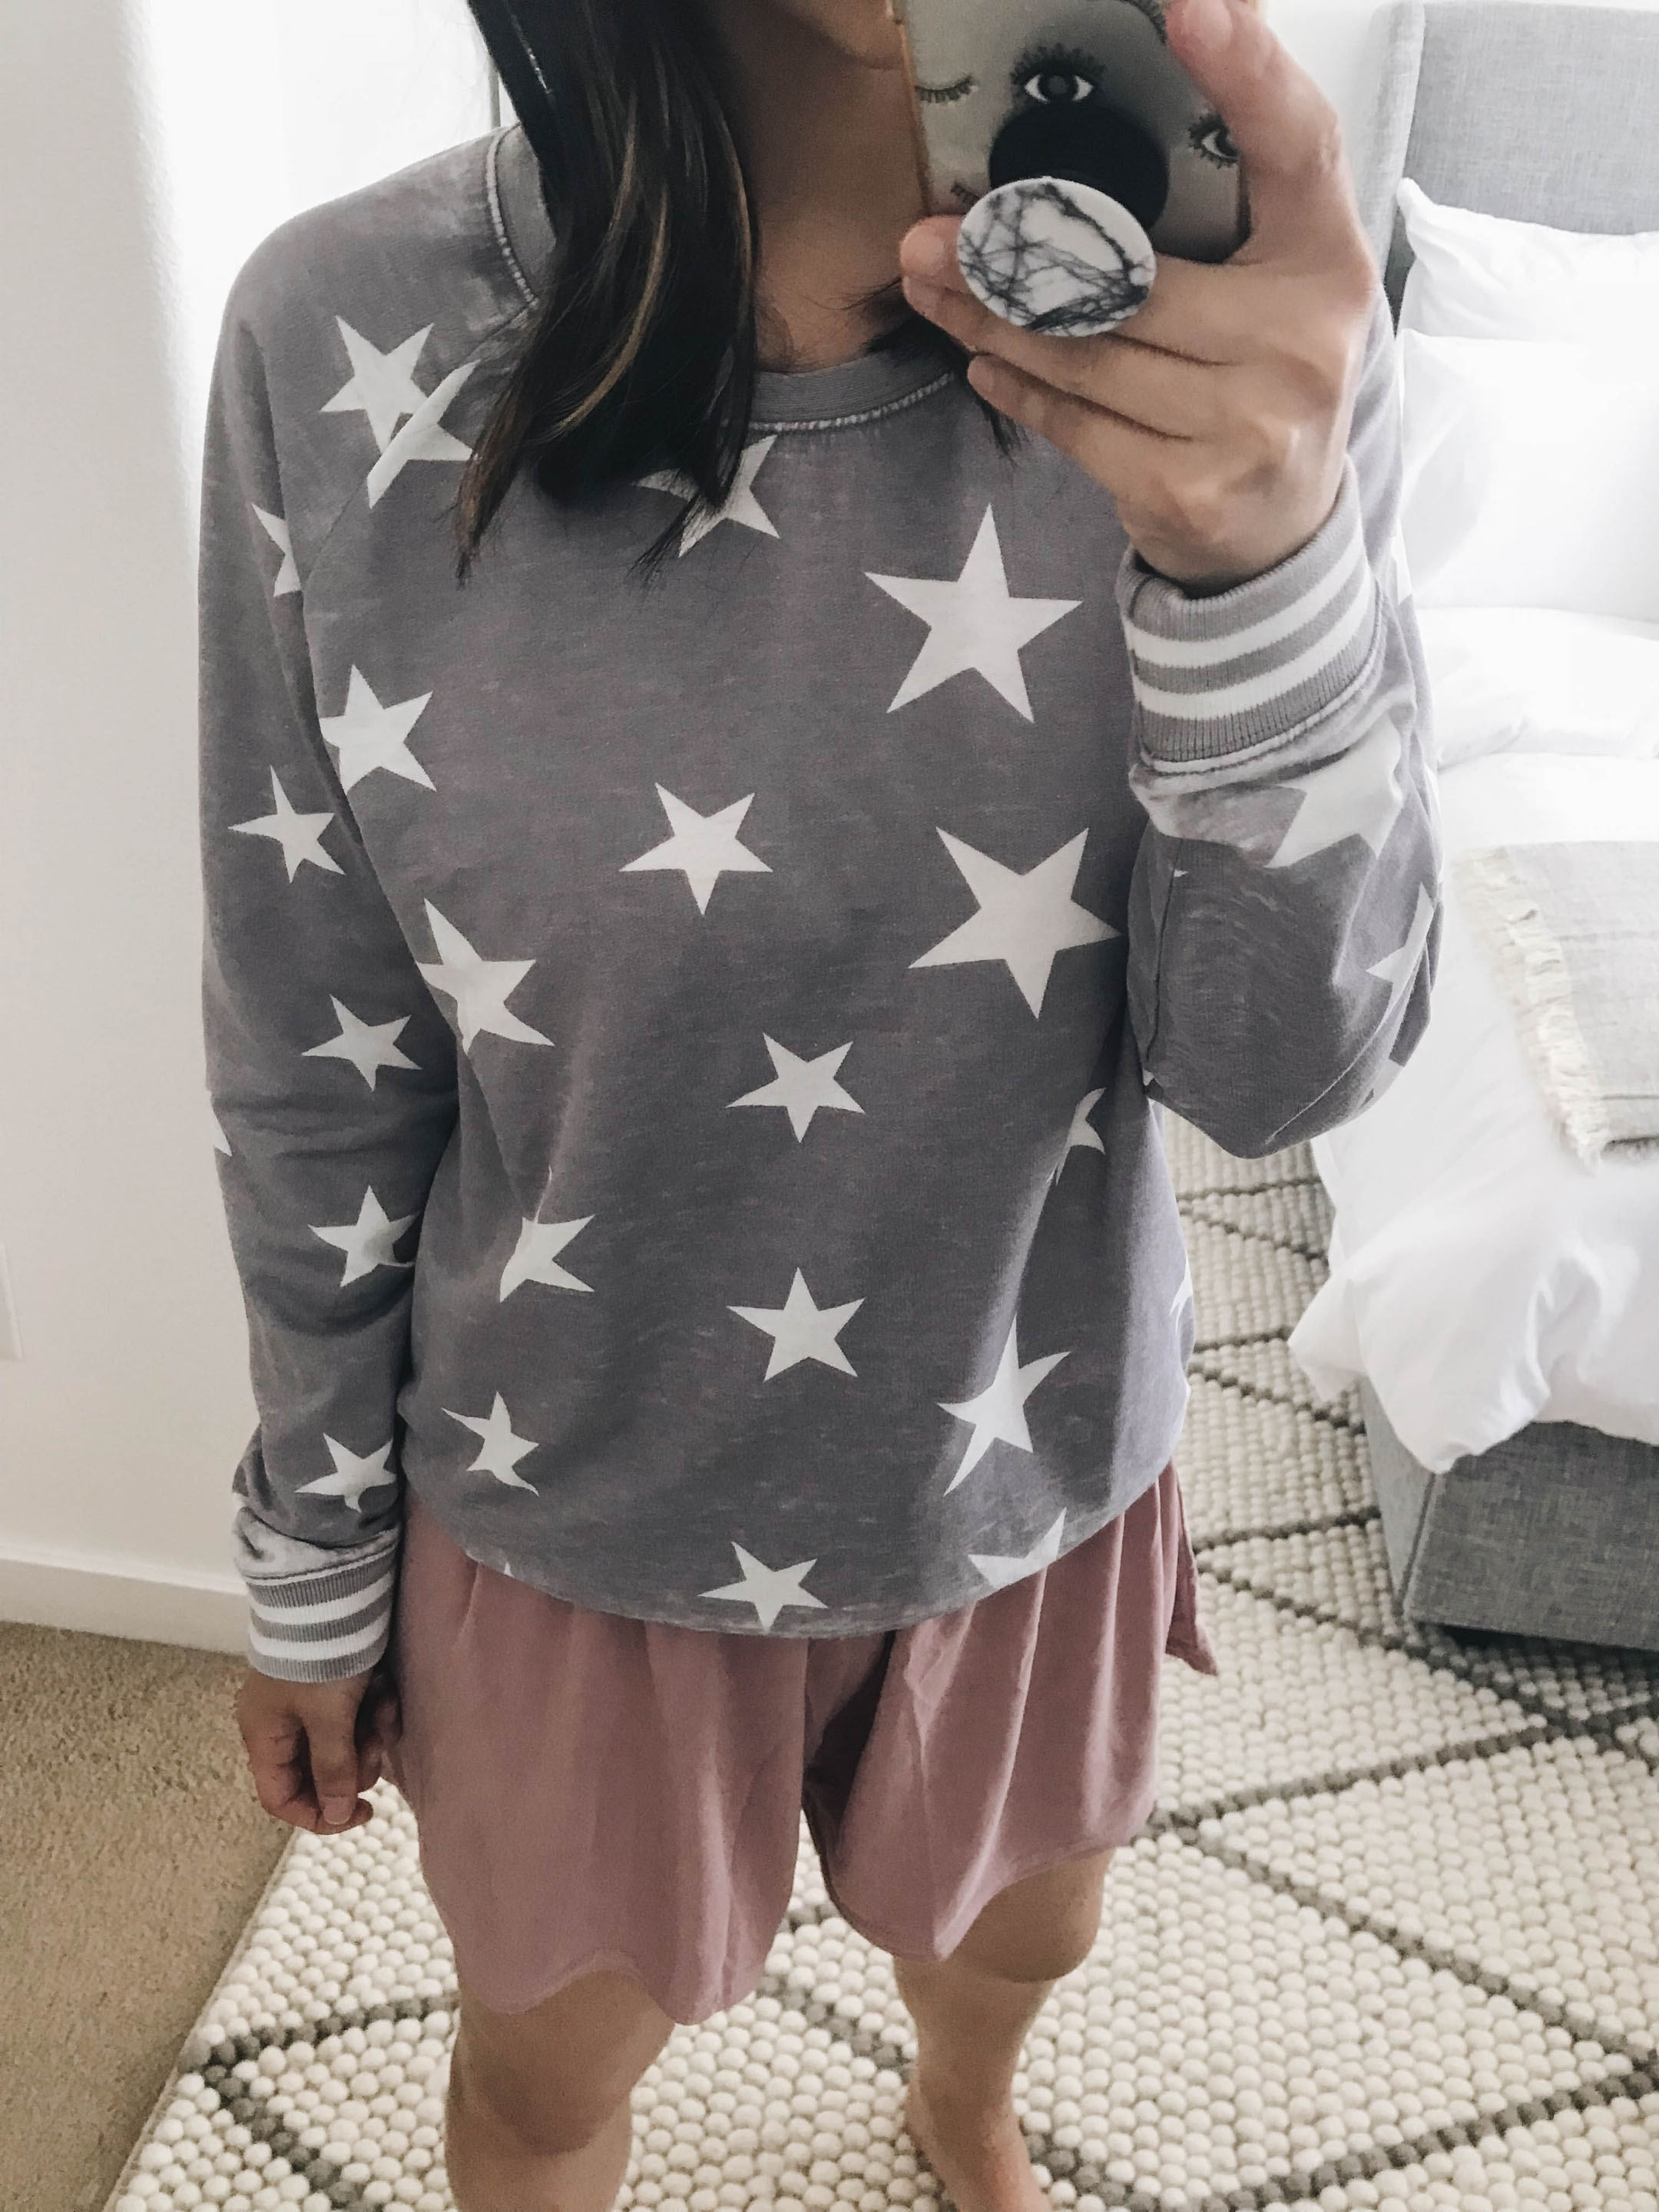 Honeydew star sweatshirt 2